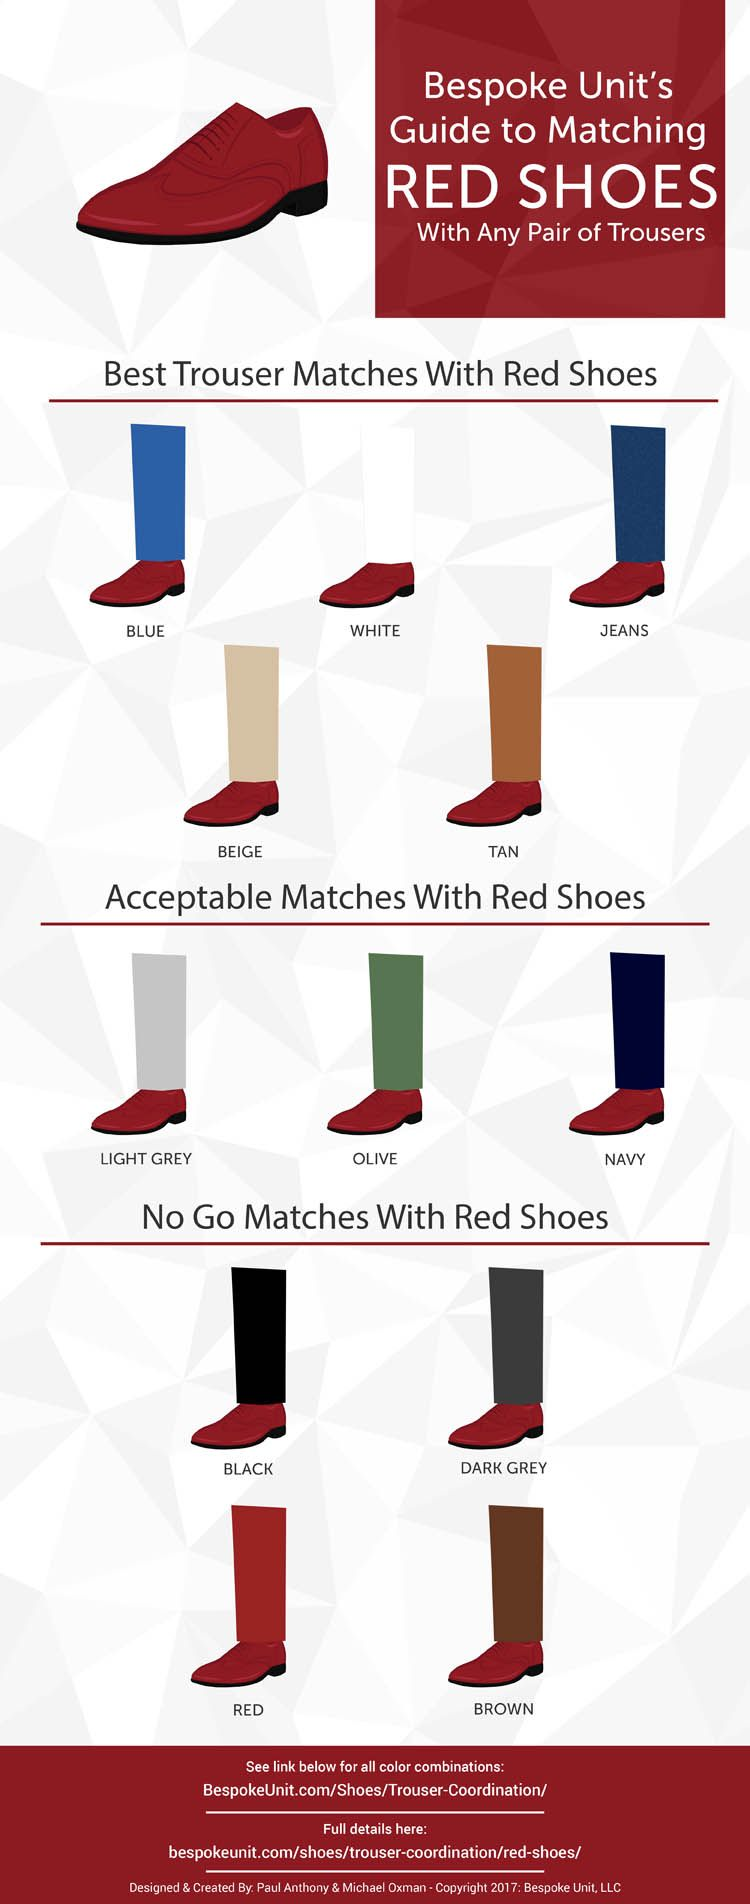 How To Pair Red Shoes With Different Trousers is part of Red dress shoes - Red shoes can be difficult to pair with trousers  How are you supposed to know what works and why  Let Bespoke Unit guide you through this advanced color